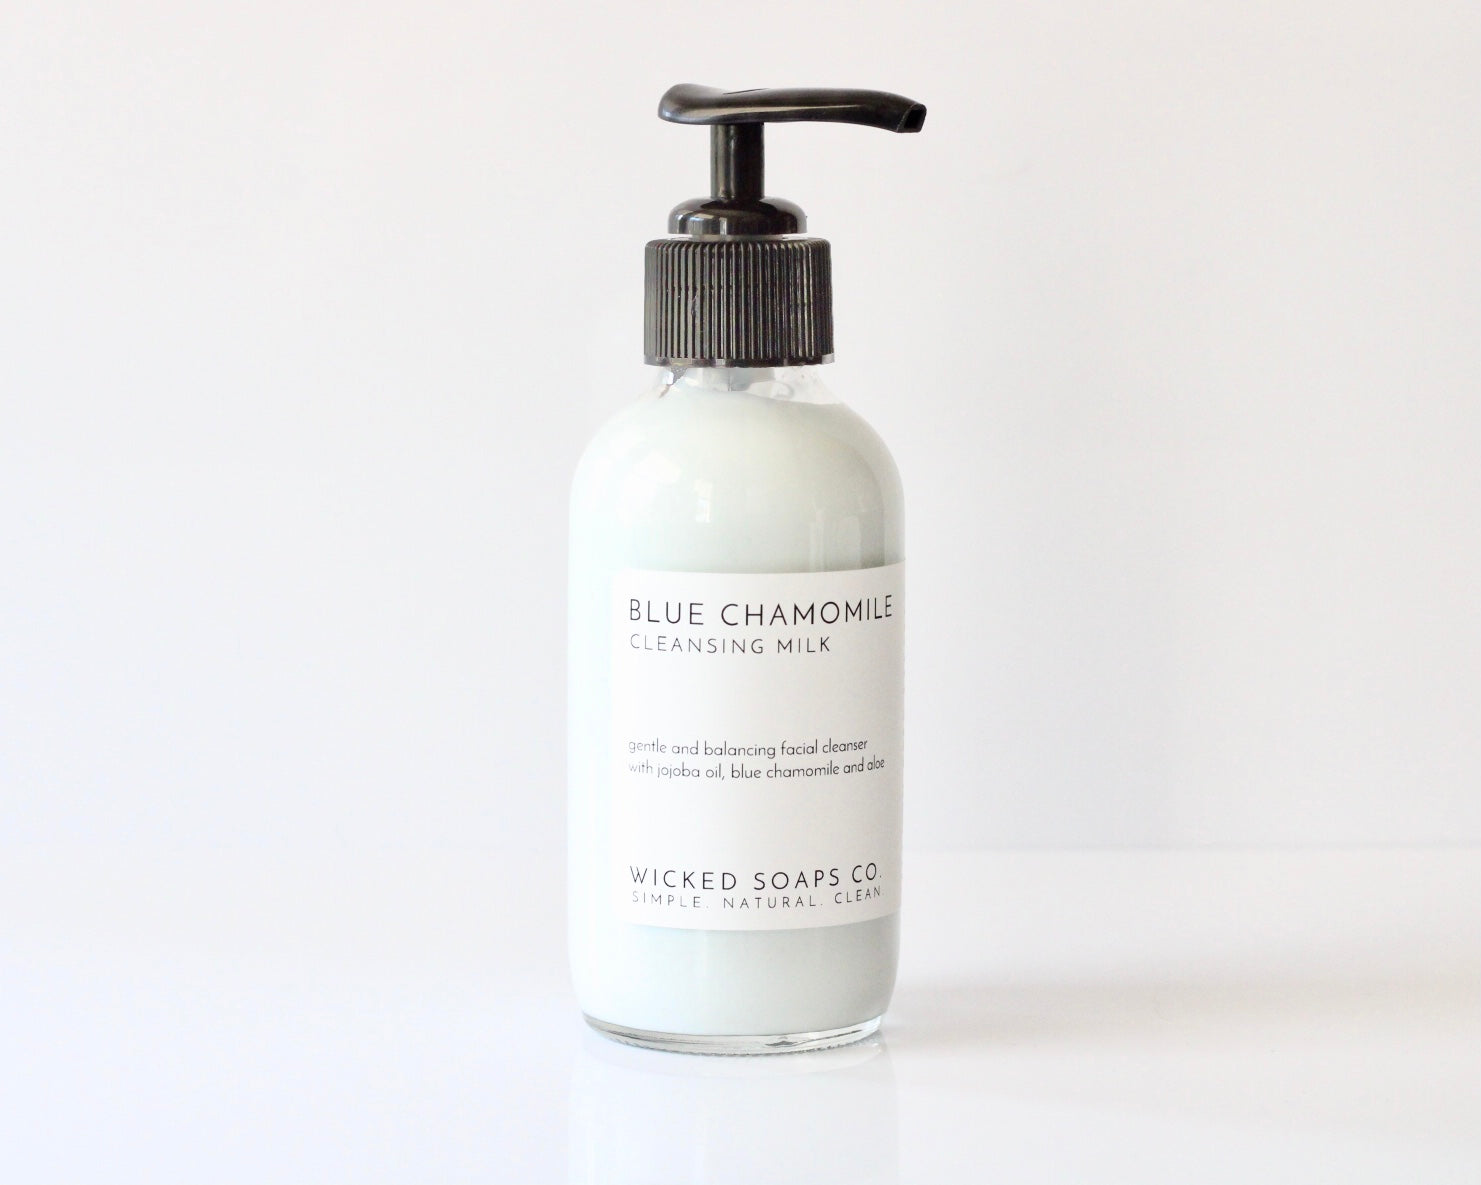 Blue Chamomile Cleansing Milk